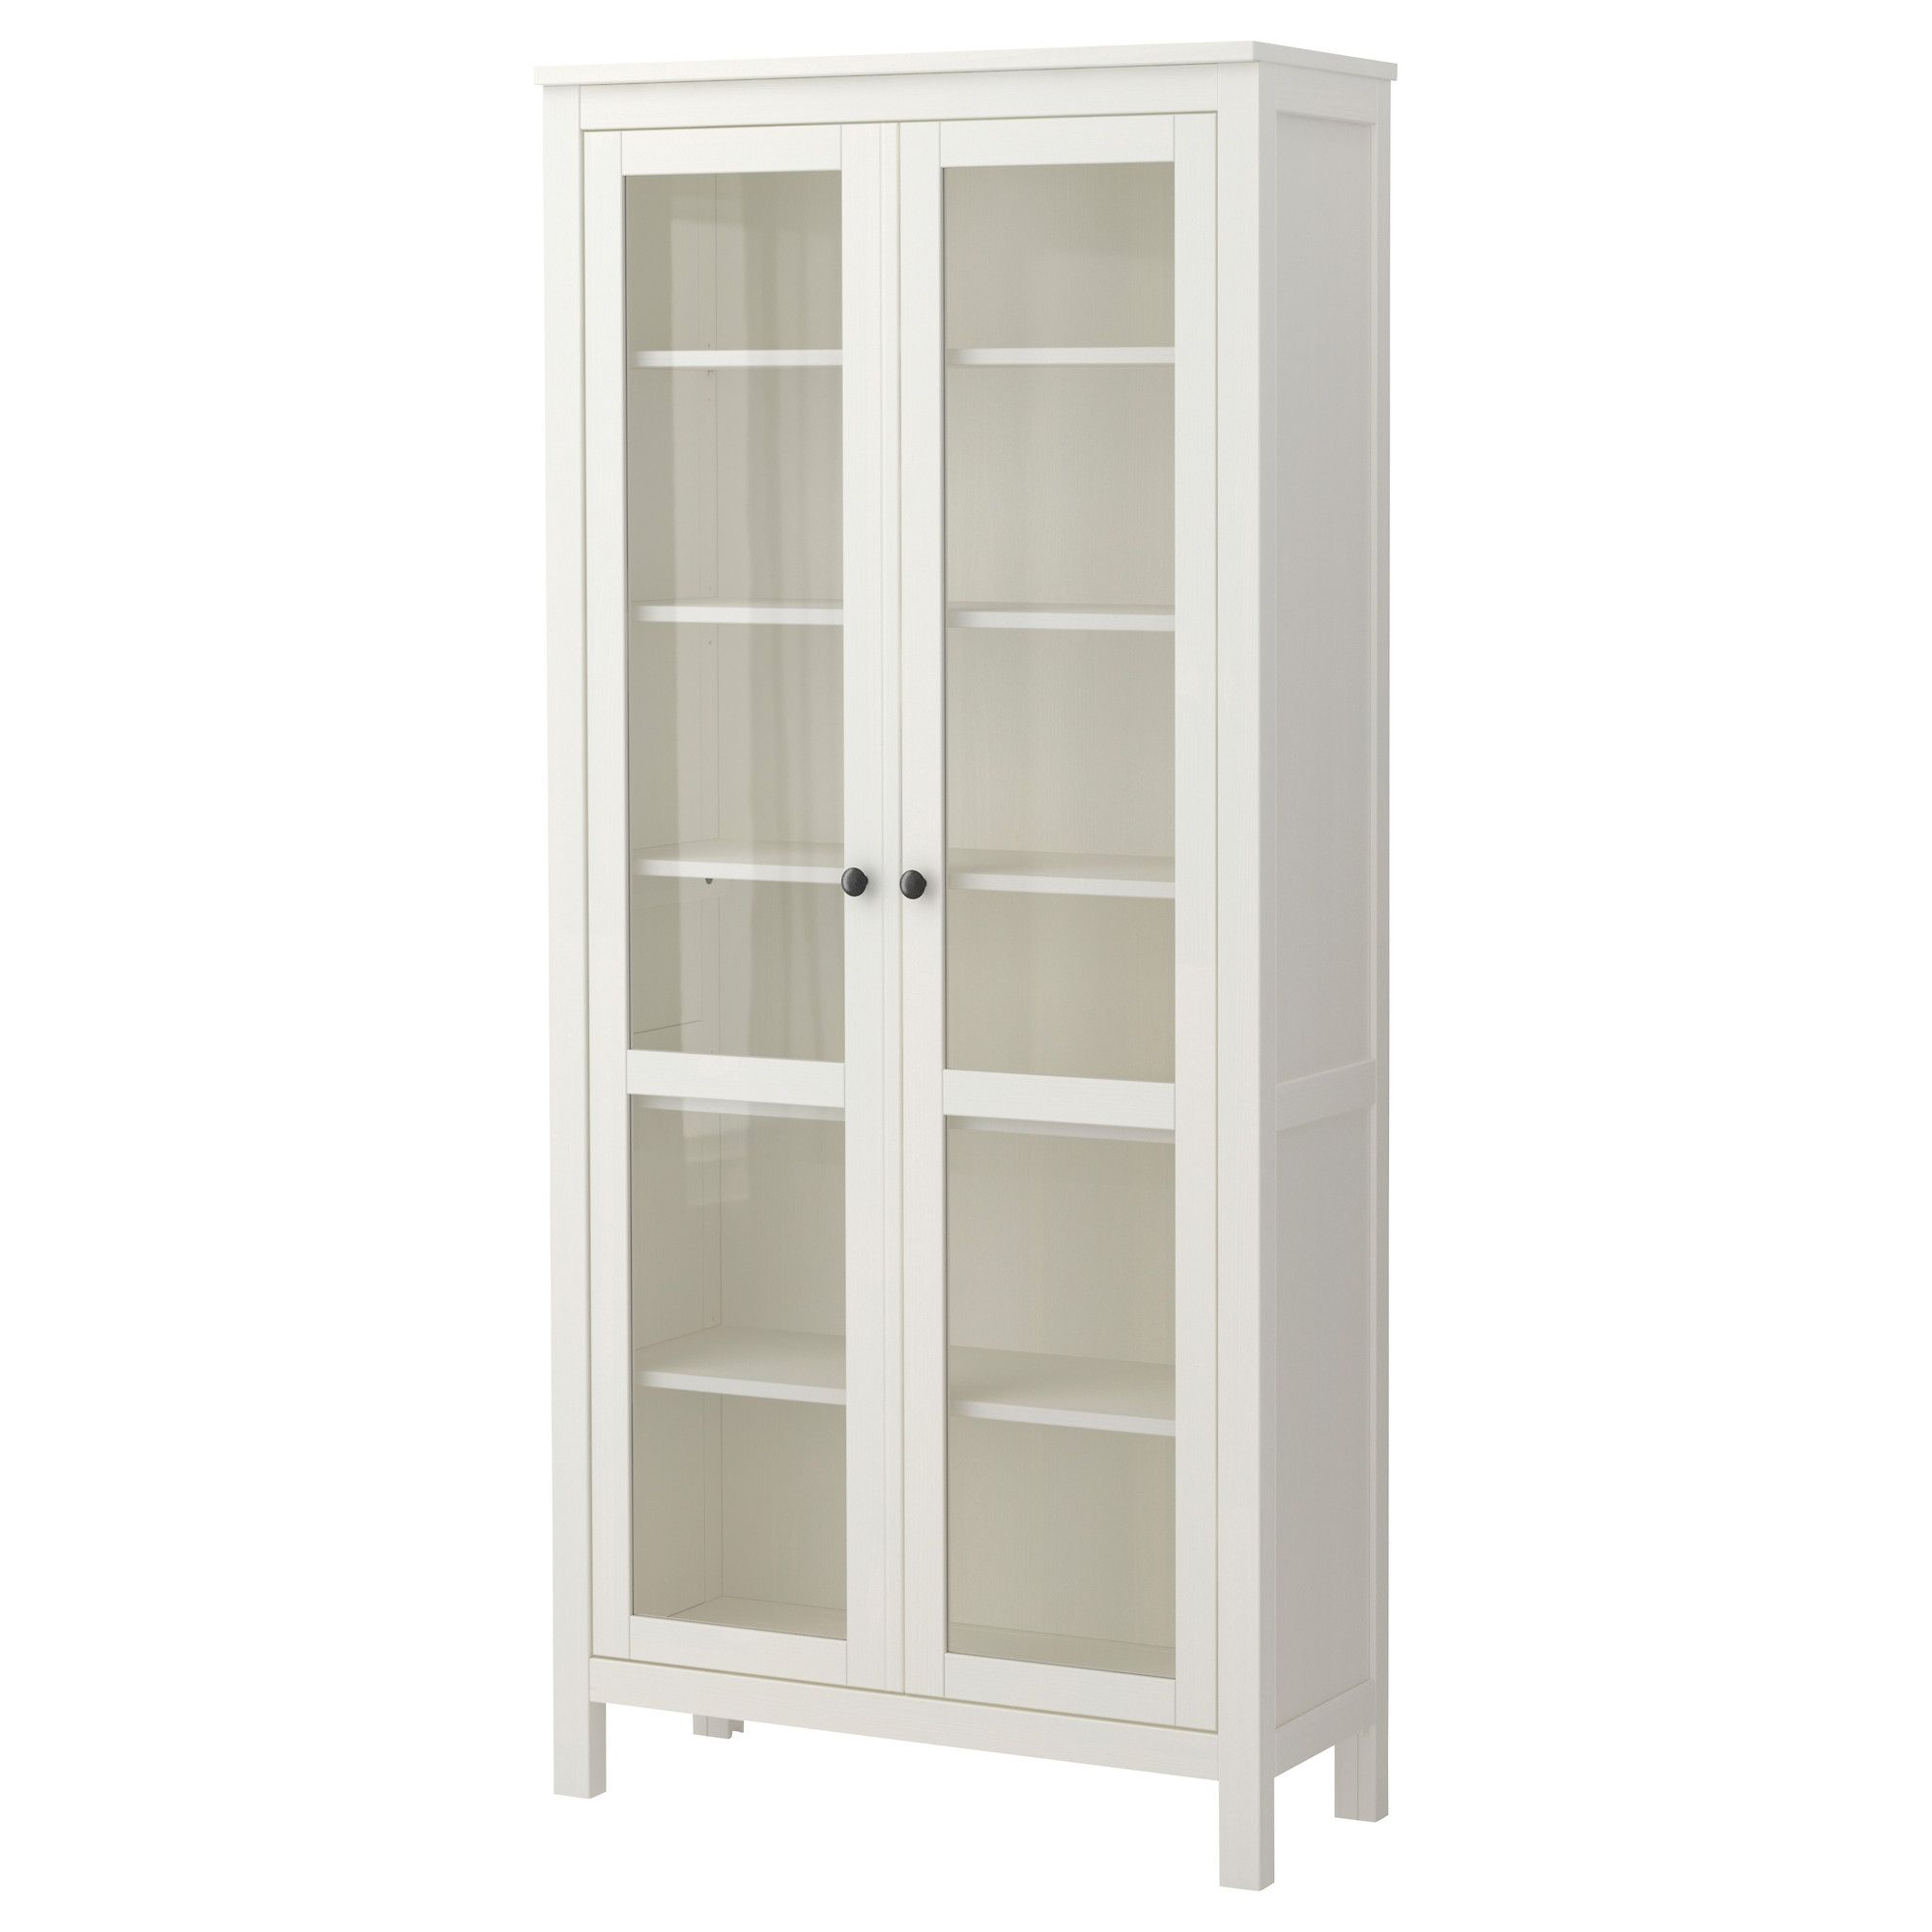 Hemnes glass door cabinet white 28 images hemnes glass for Miroir adhesif ikea